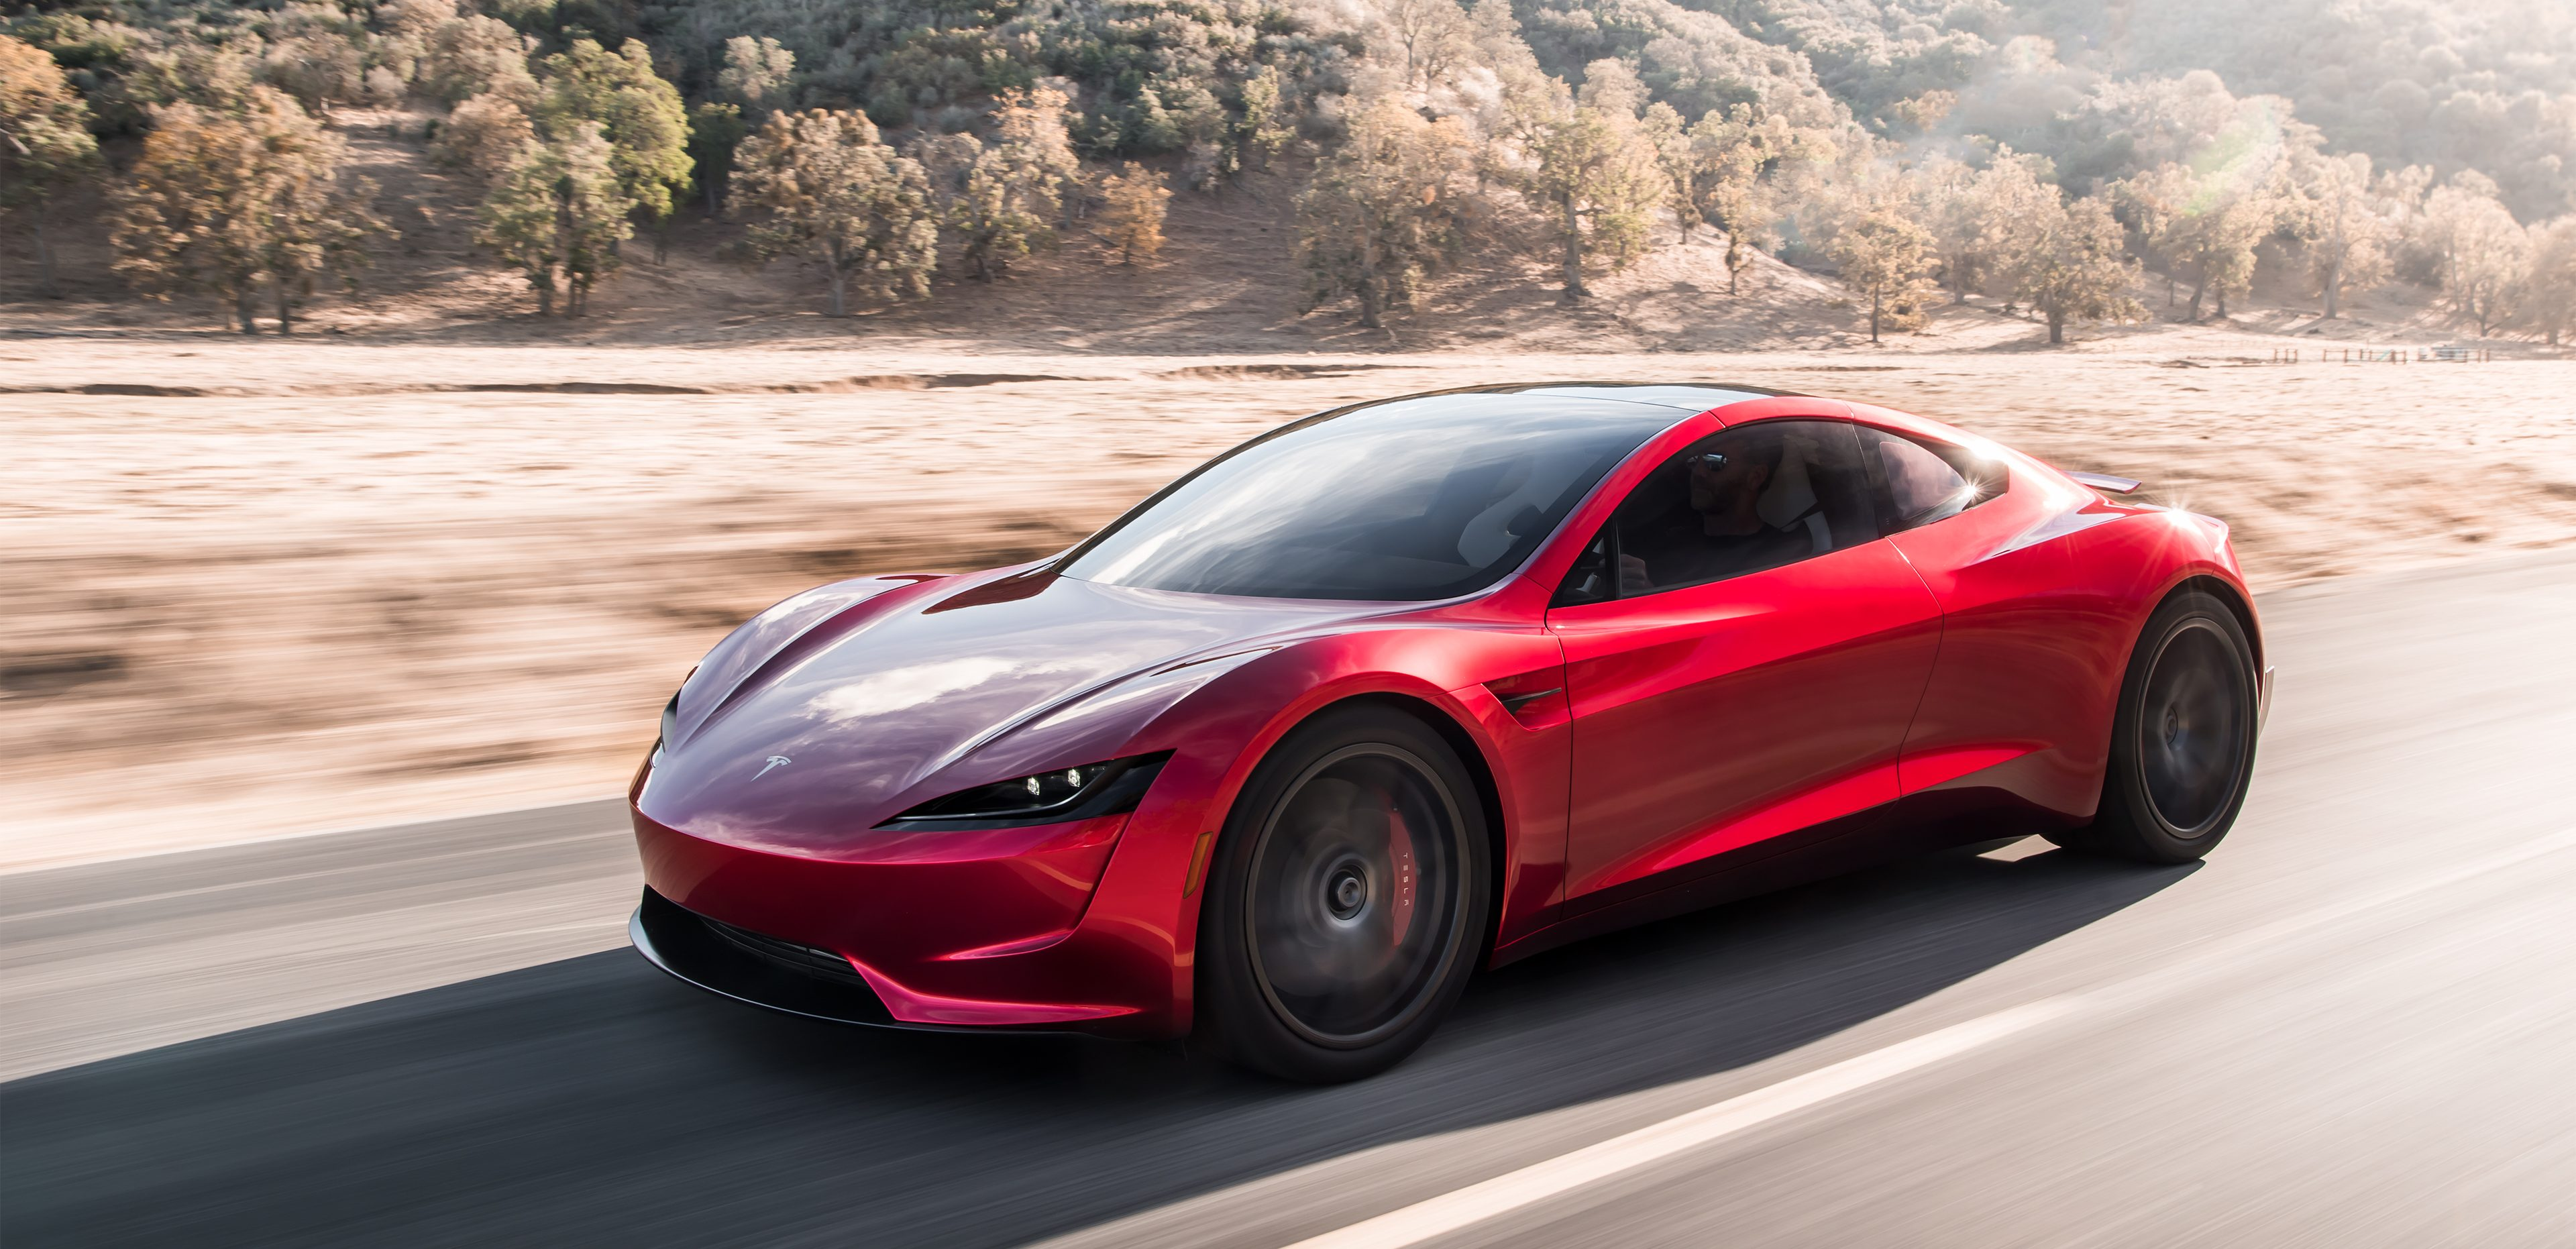 Tesla Next Generation Roadster Breaks All The Records 0 60 Mph In 1 9 Sec 620 Mile Range And More